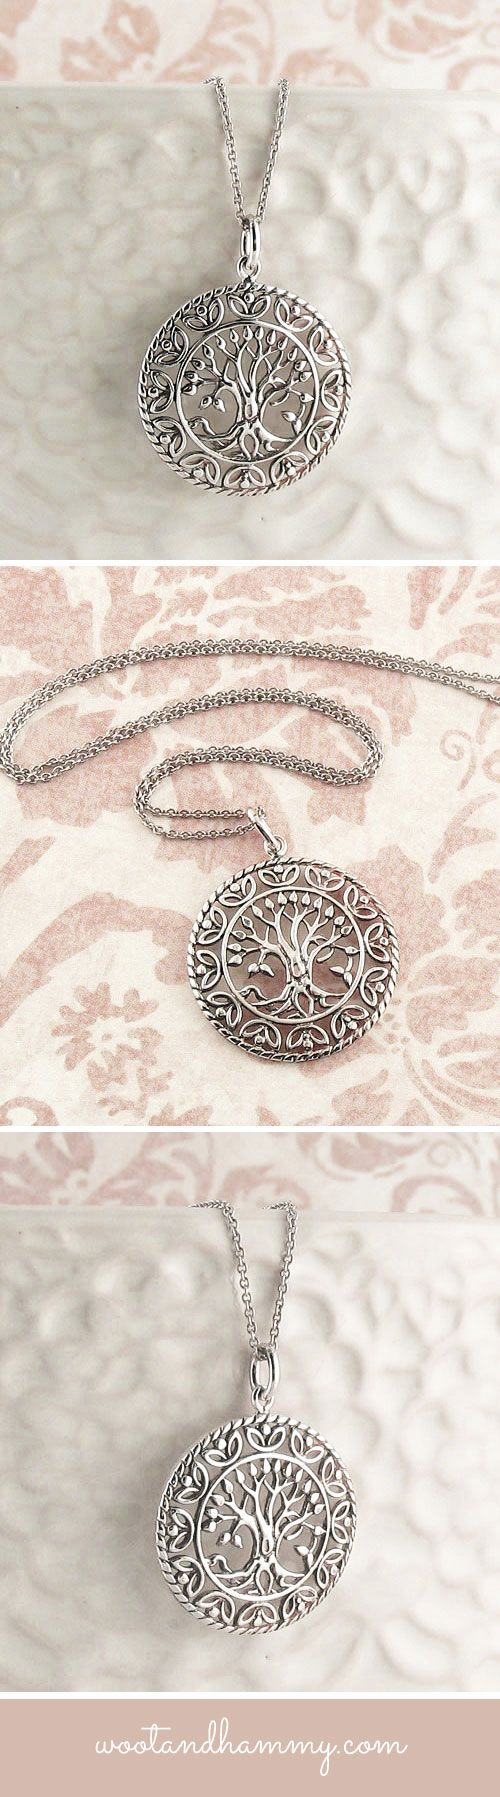 beautiful tree of life necklace in sterling silver.